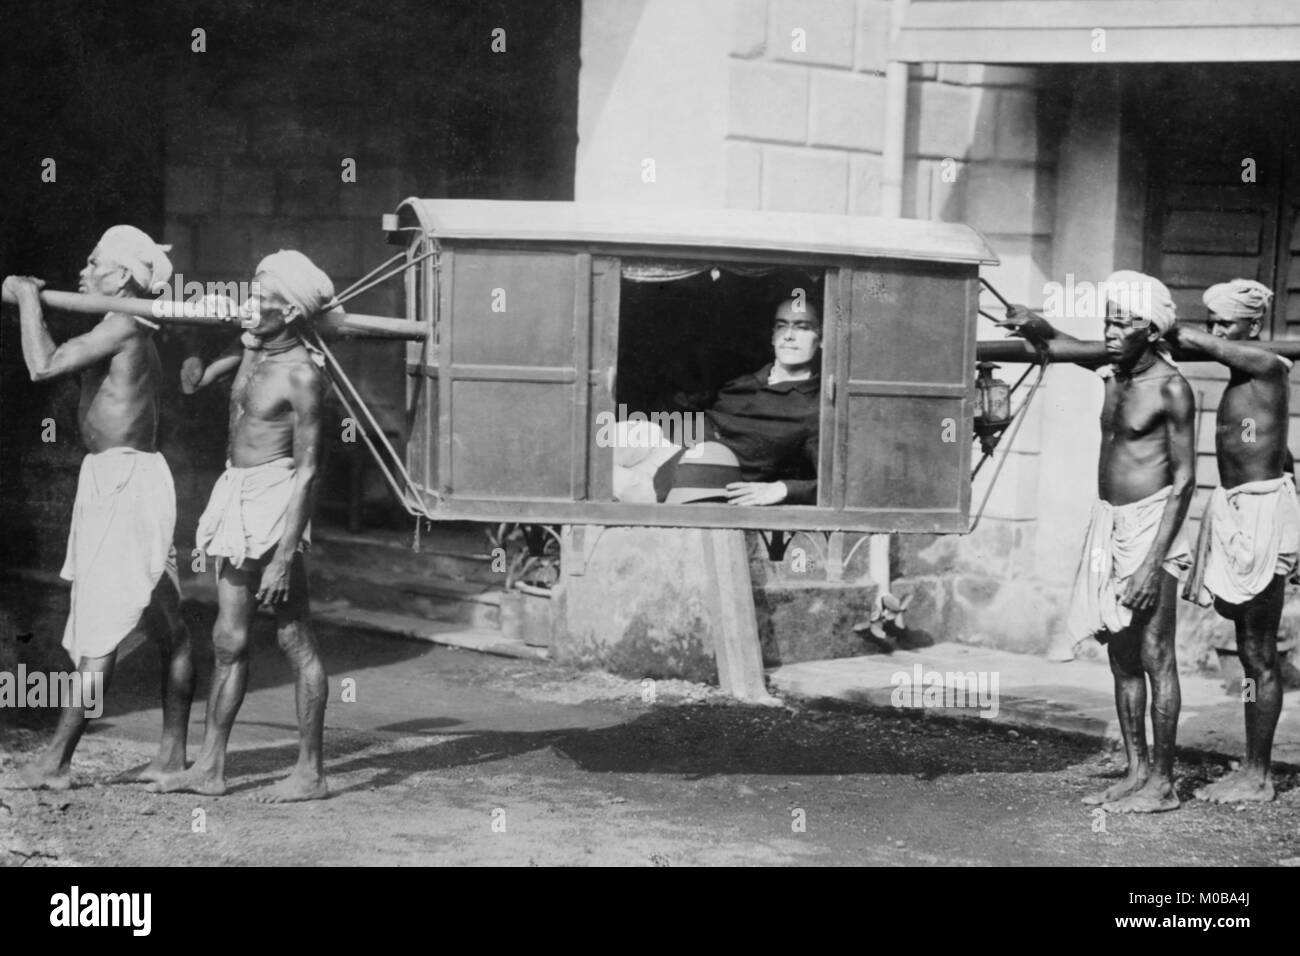 Four Indian Porters Carry a Westerner in a palanquin or Sedan Chair - Stock Image